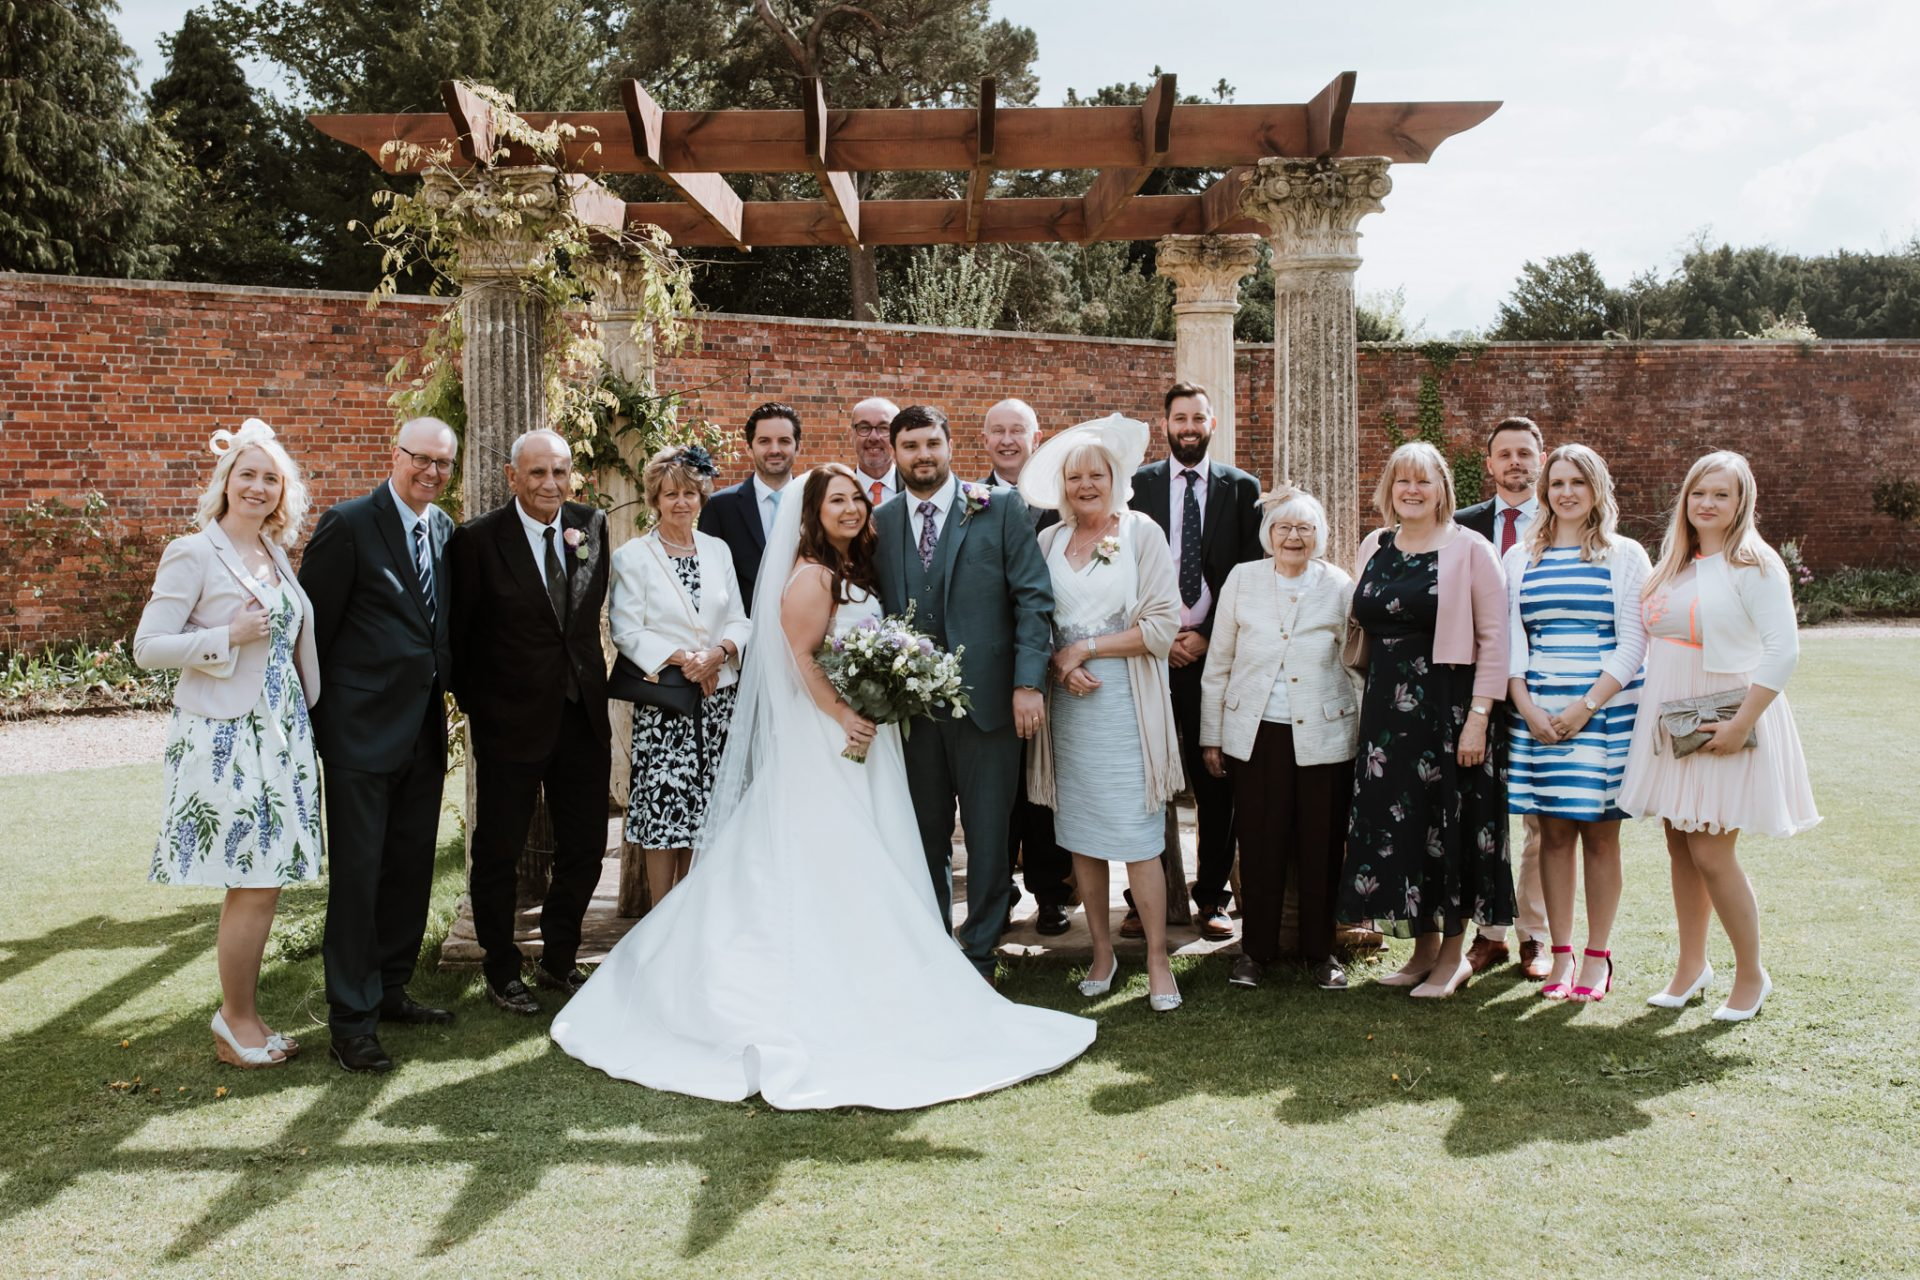 group family wedding photo elmhay park